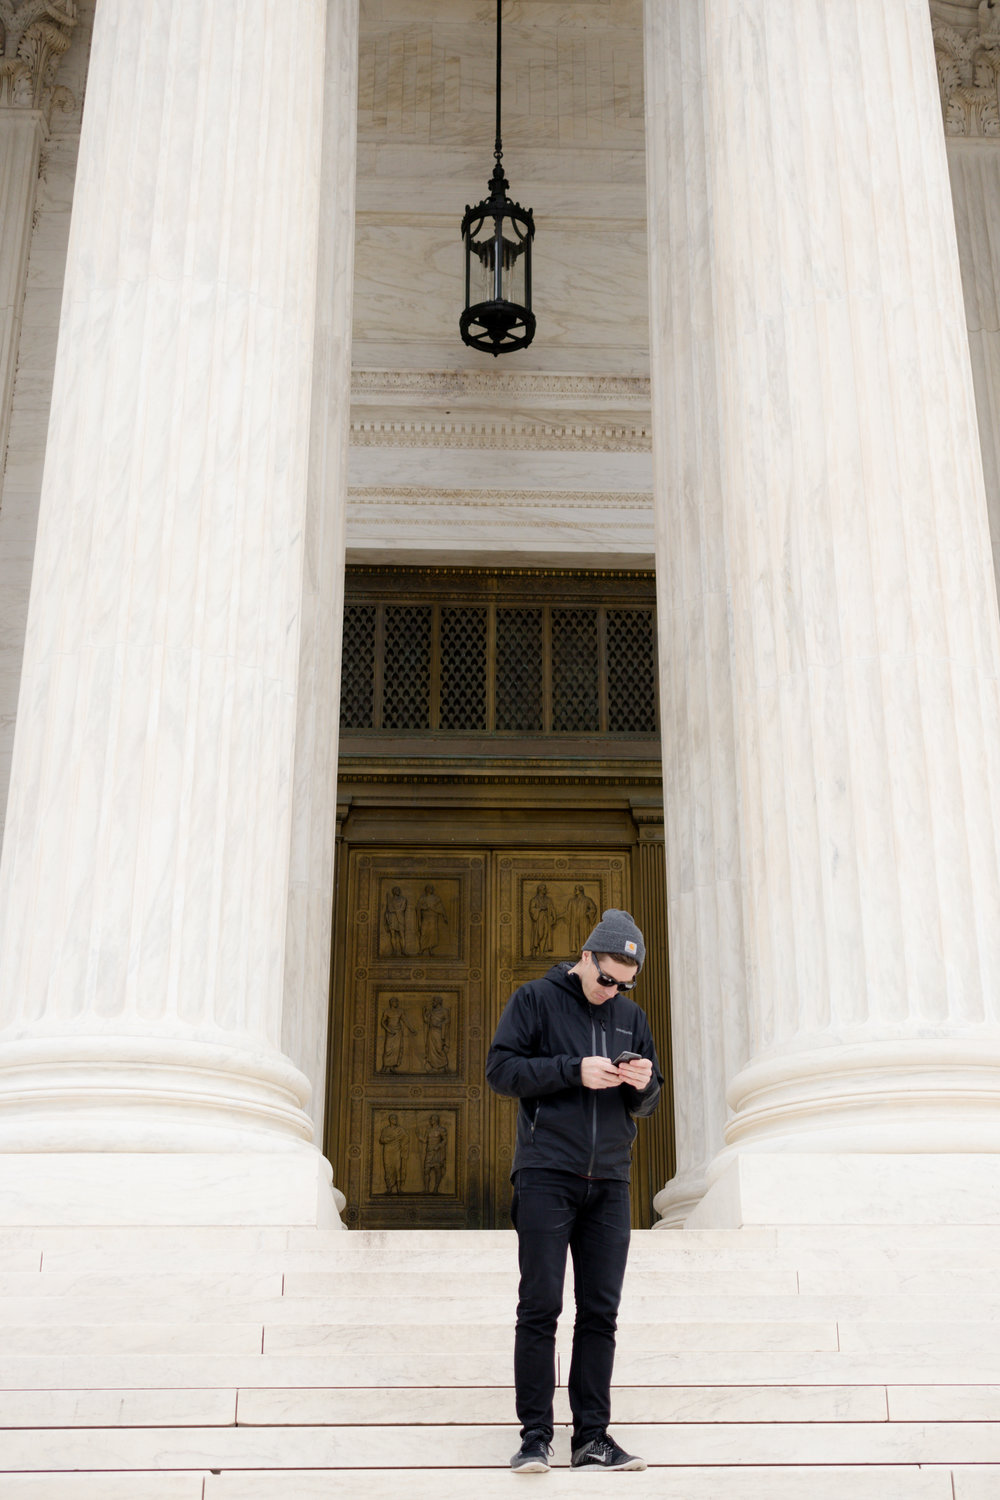 Shay on his phone in front of an important government building (Photo 3 of 3)